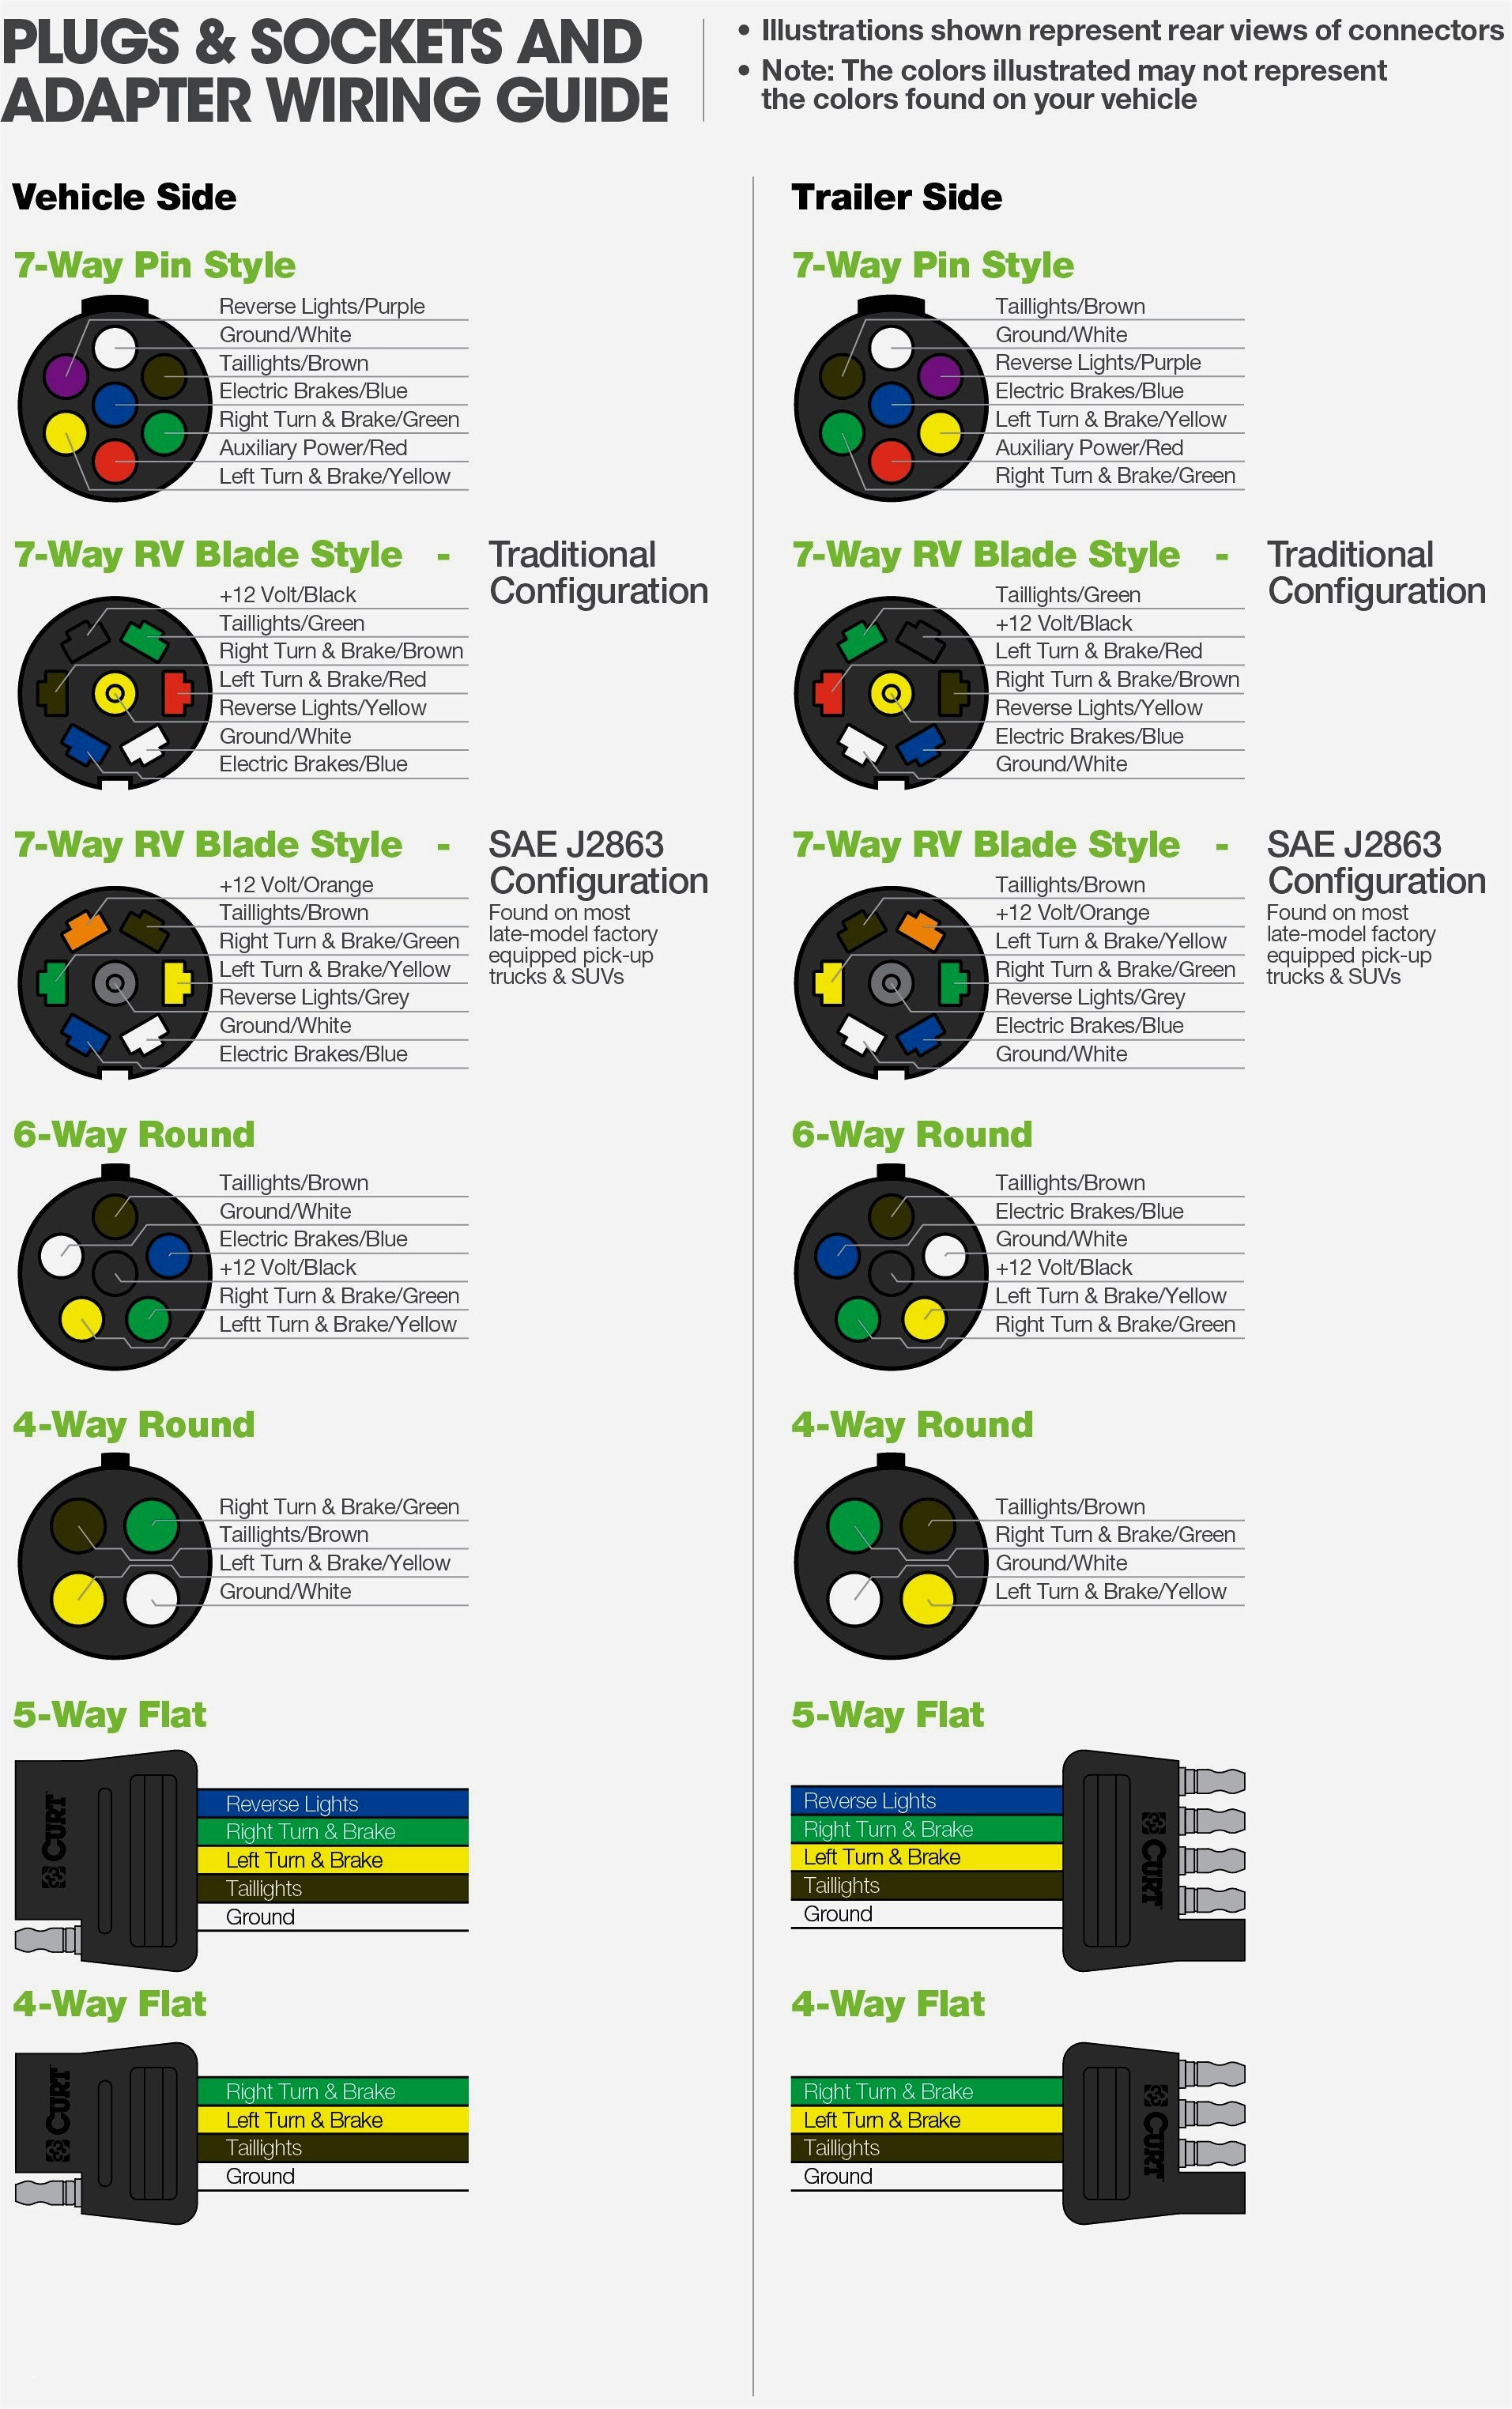 4 Wire Trailer Wiring Diagram Troubleshooting To T Best Wiring New - 4 Wire Trailer Wiring Diagram Troubleshooting